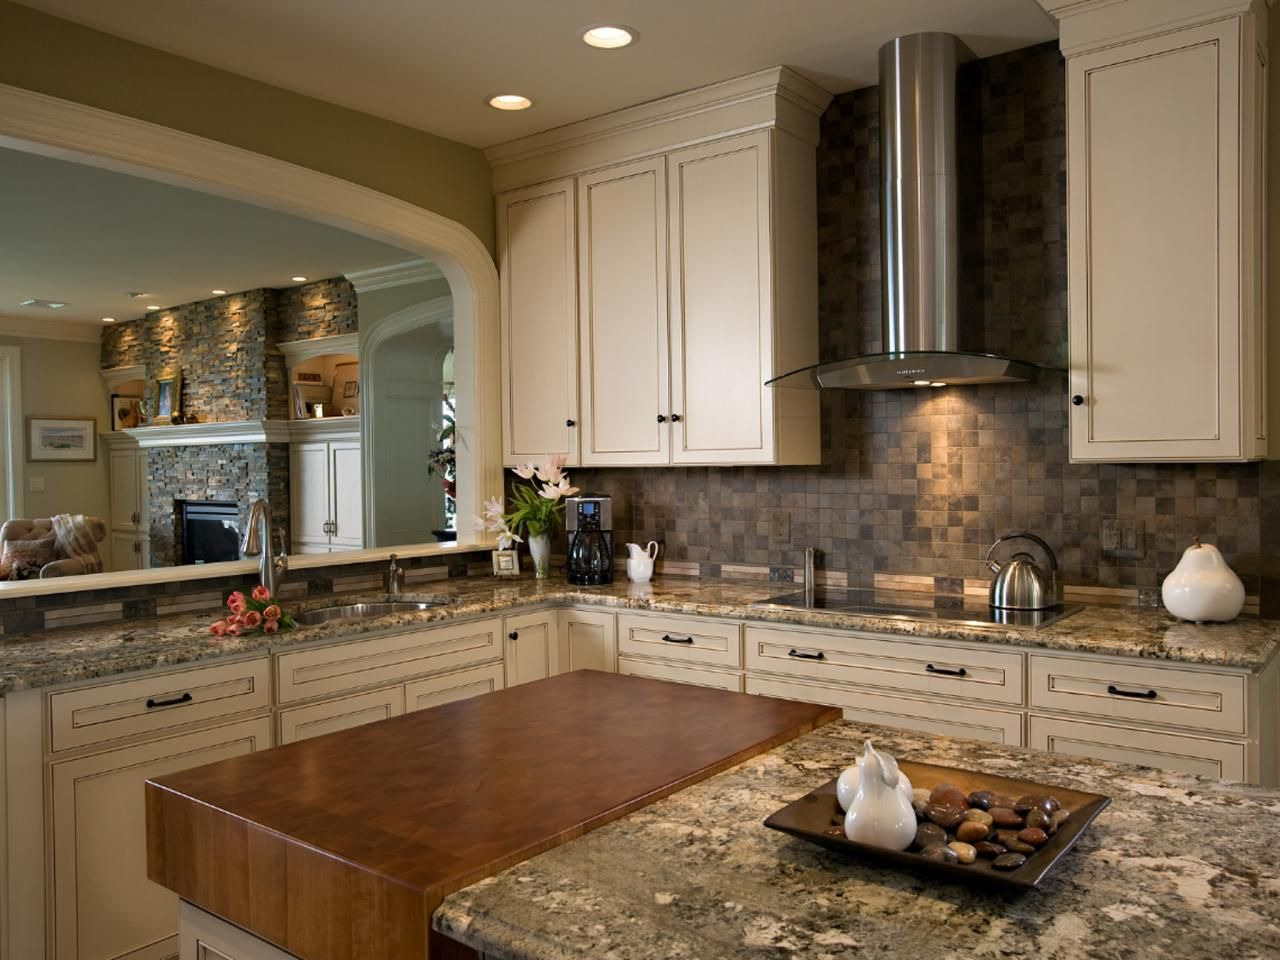 - The Combination Of Earthy Tones And Textures Of The Granite